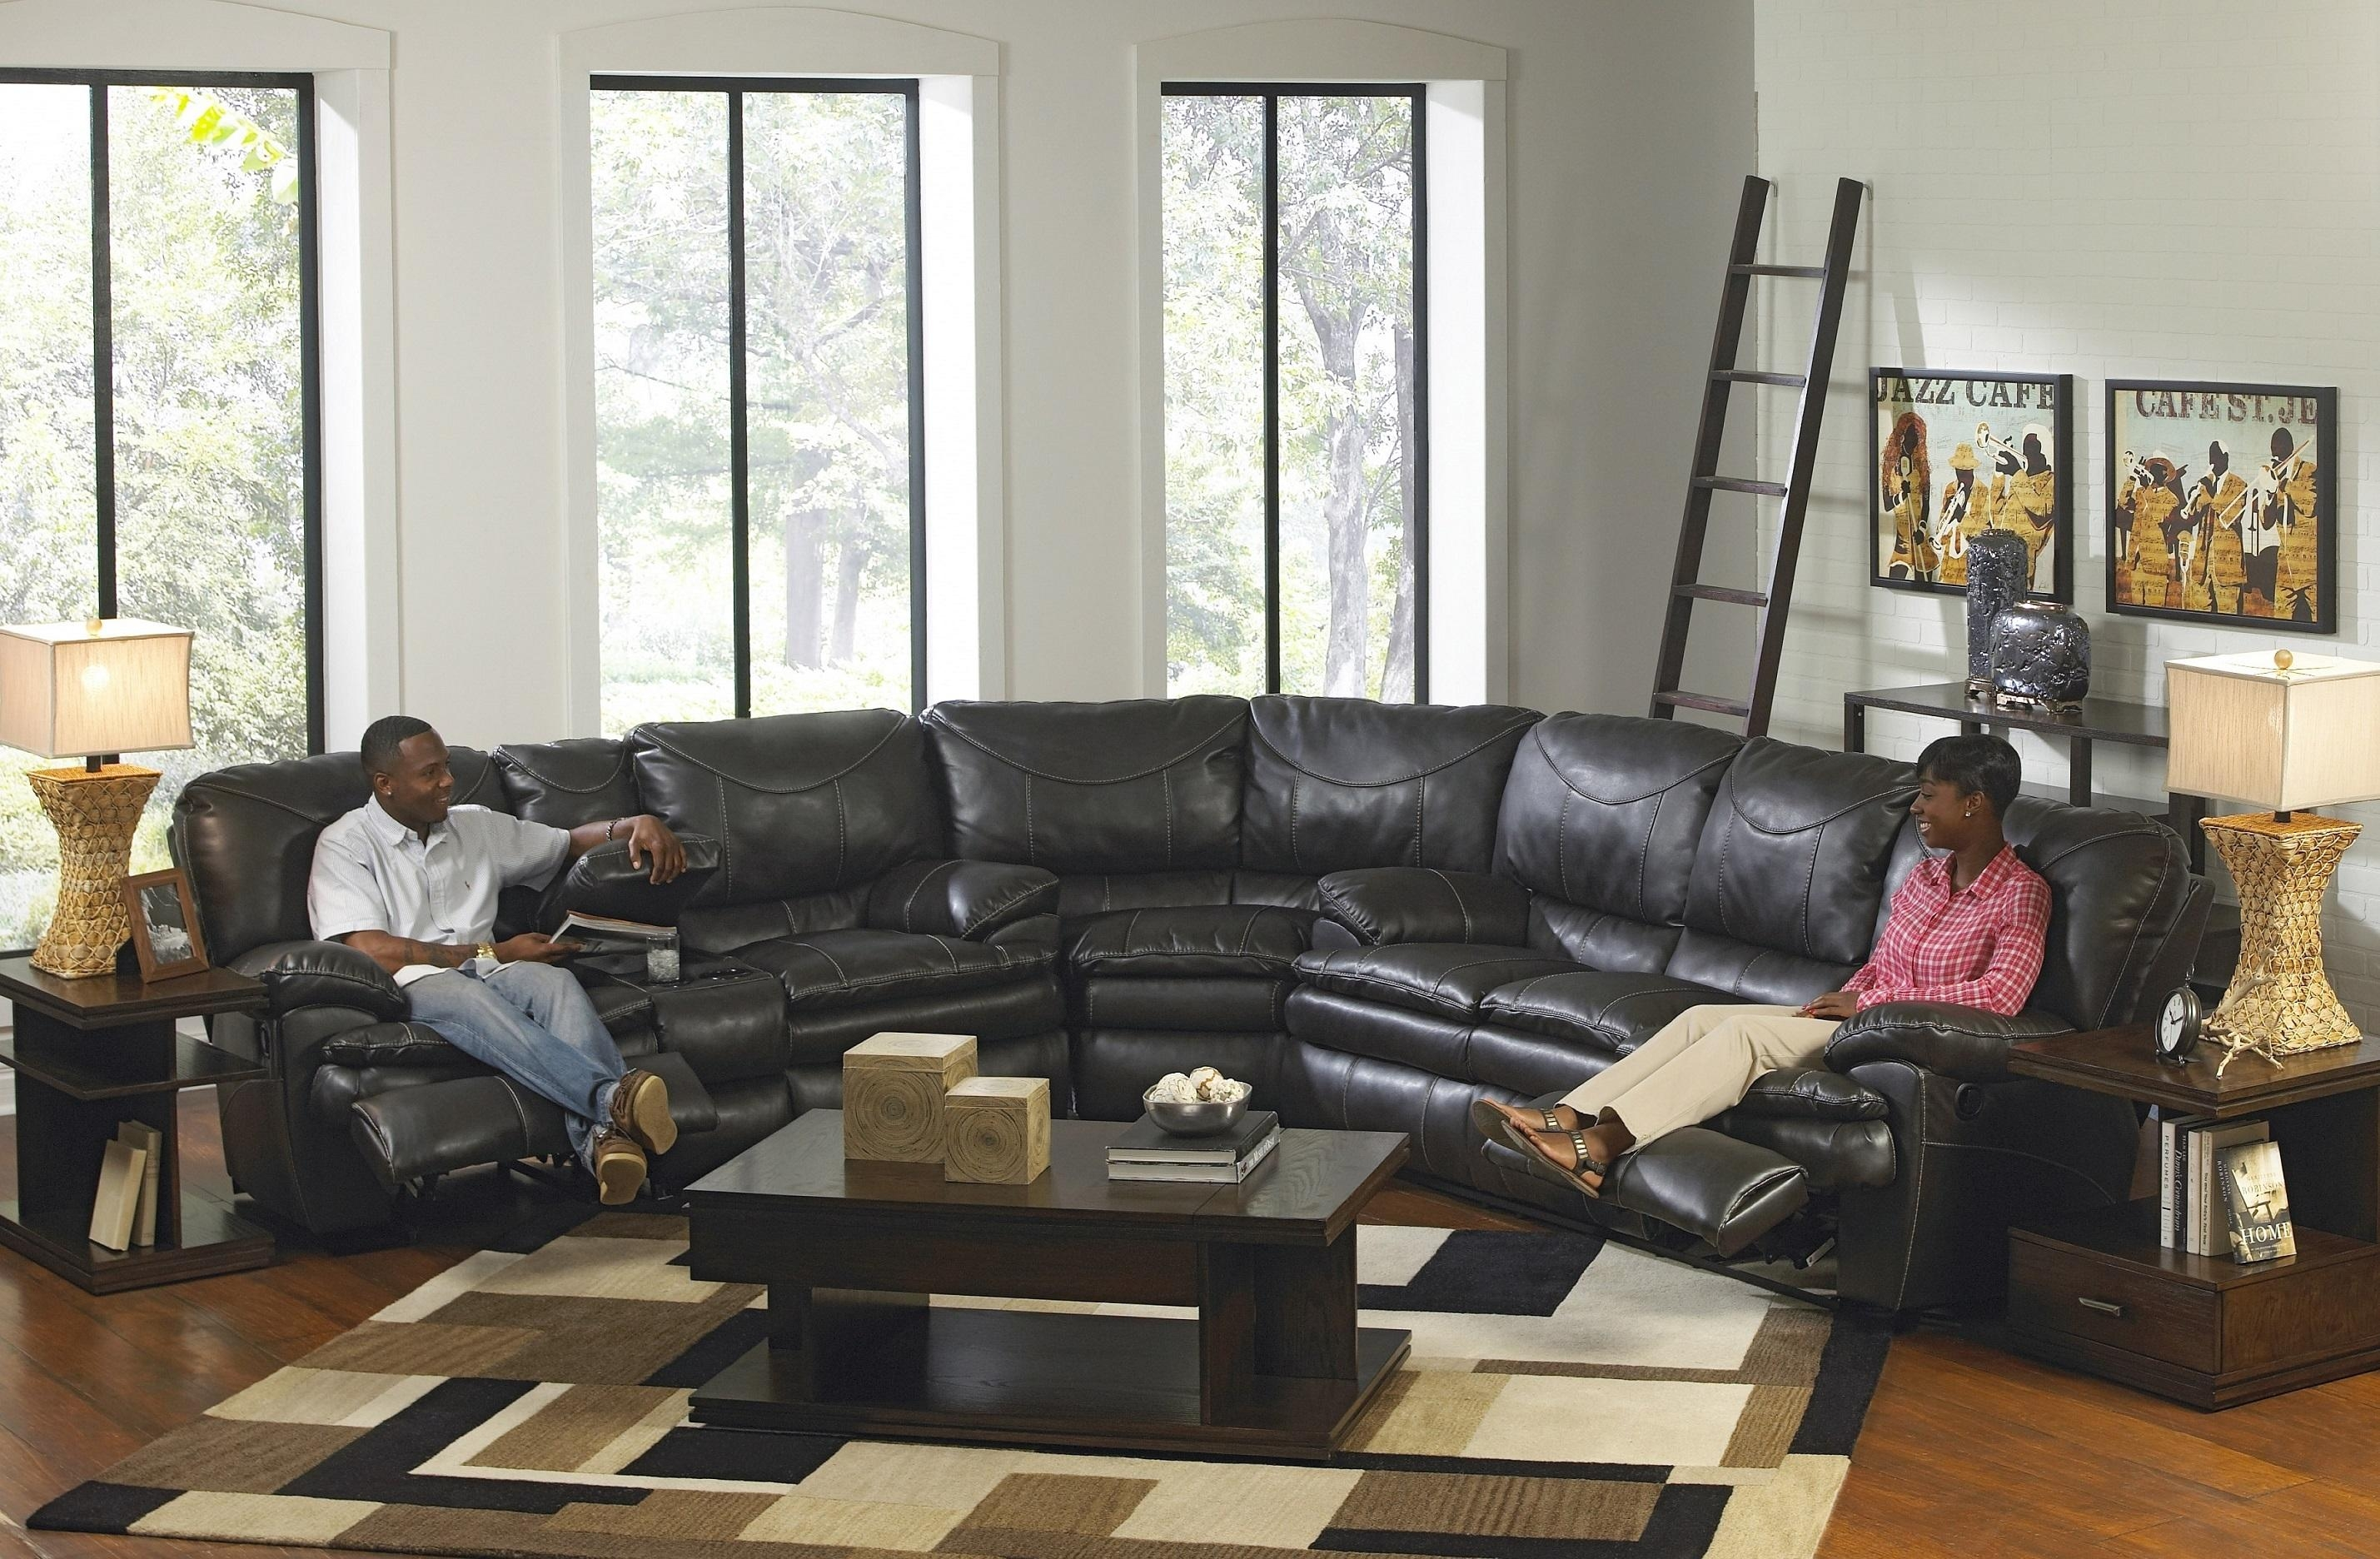 Abbyson Living Sectional Sofa ~ Hmmi Within Abbyson Living Sectional Sofas (Image 9 of 20)